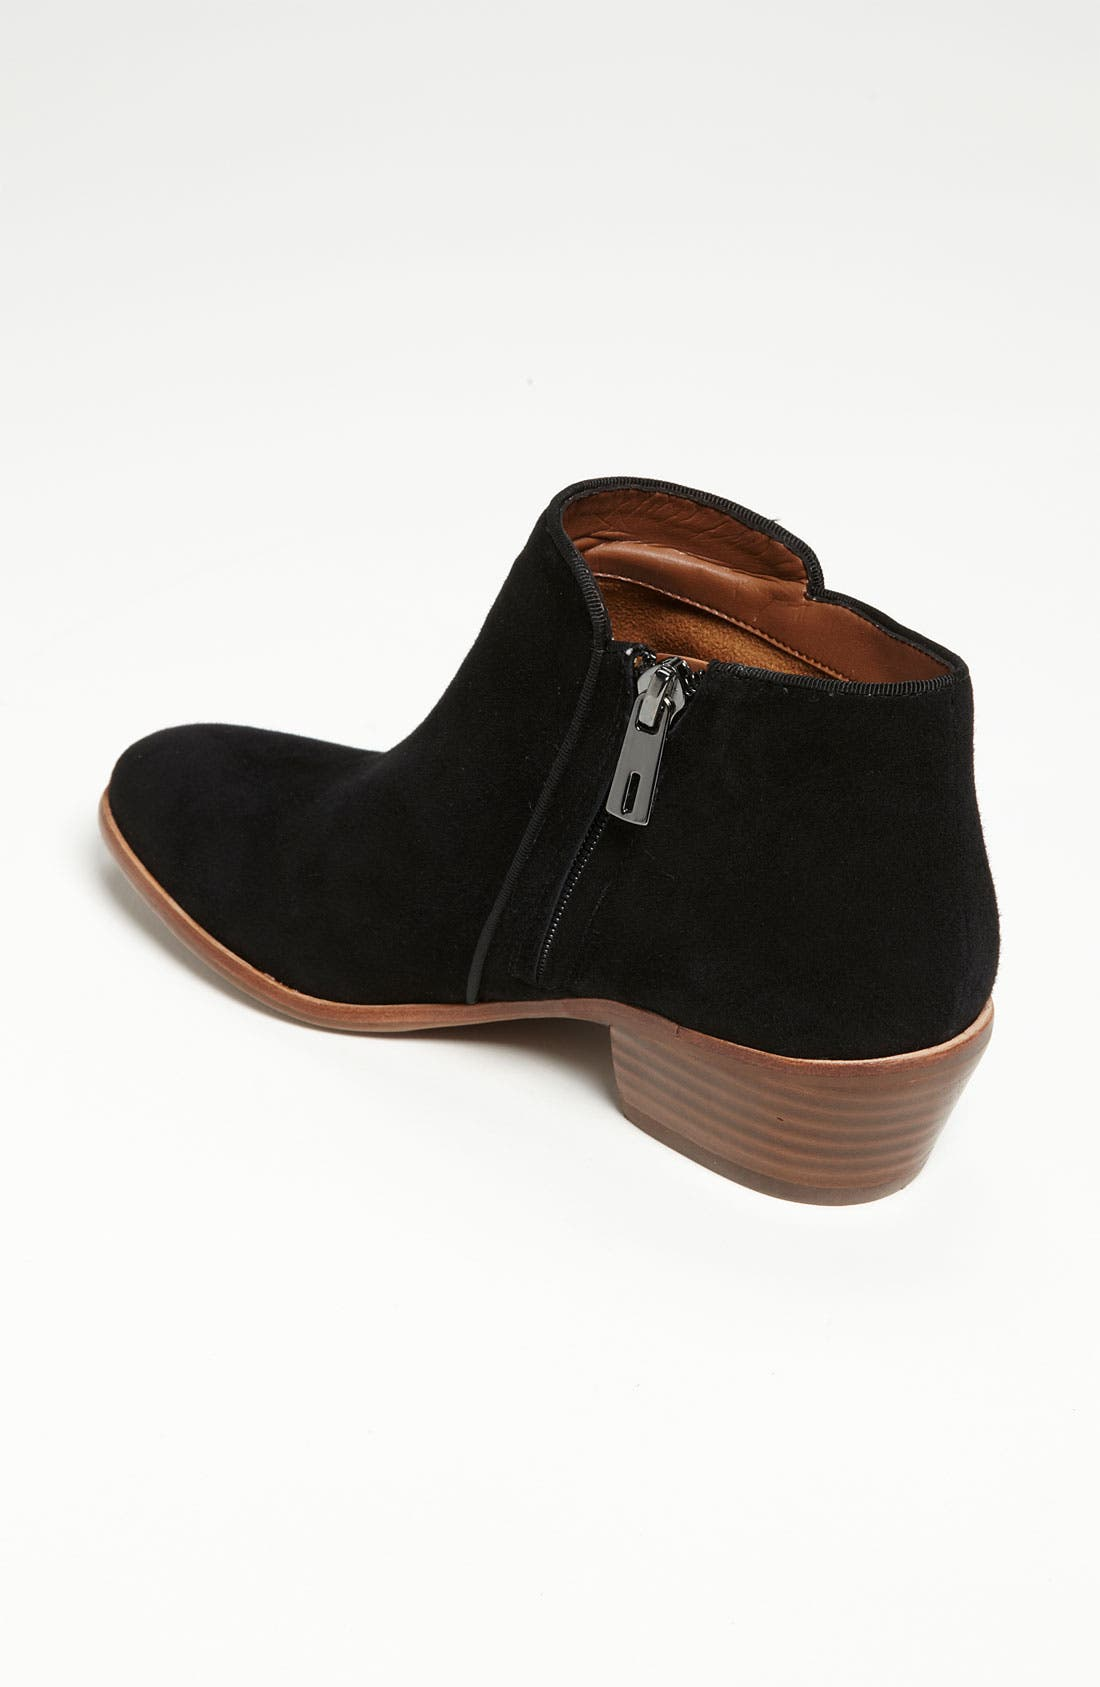 'Petty' Chelsea Boot,                             Alternate thumbnail 7, color,                             BLACK SUEDE